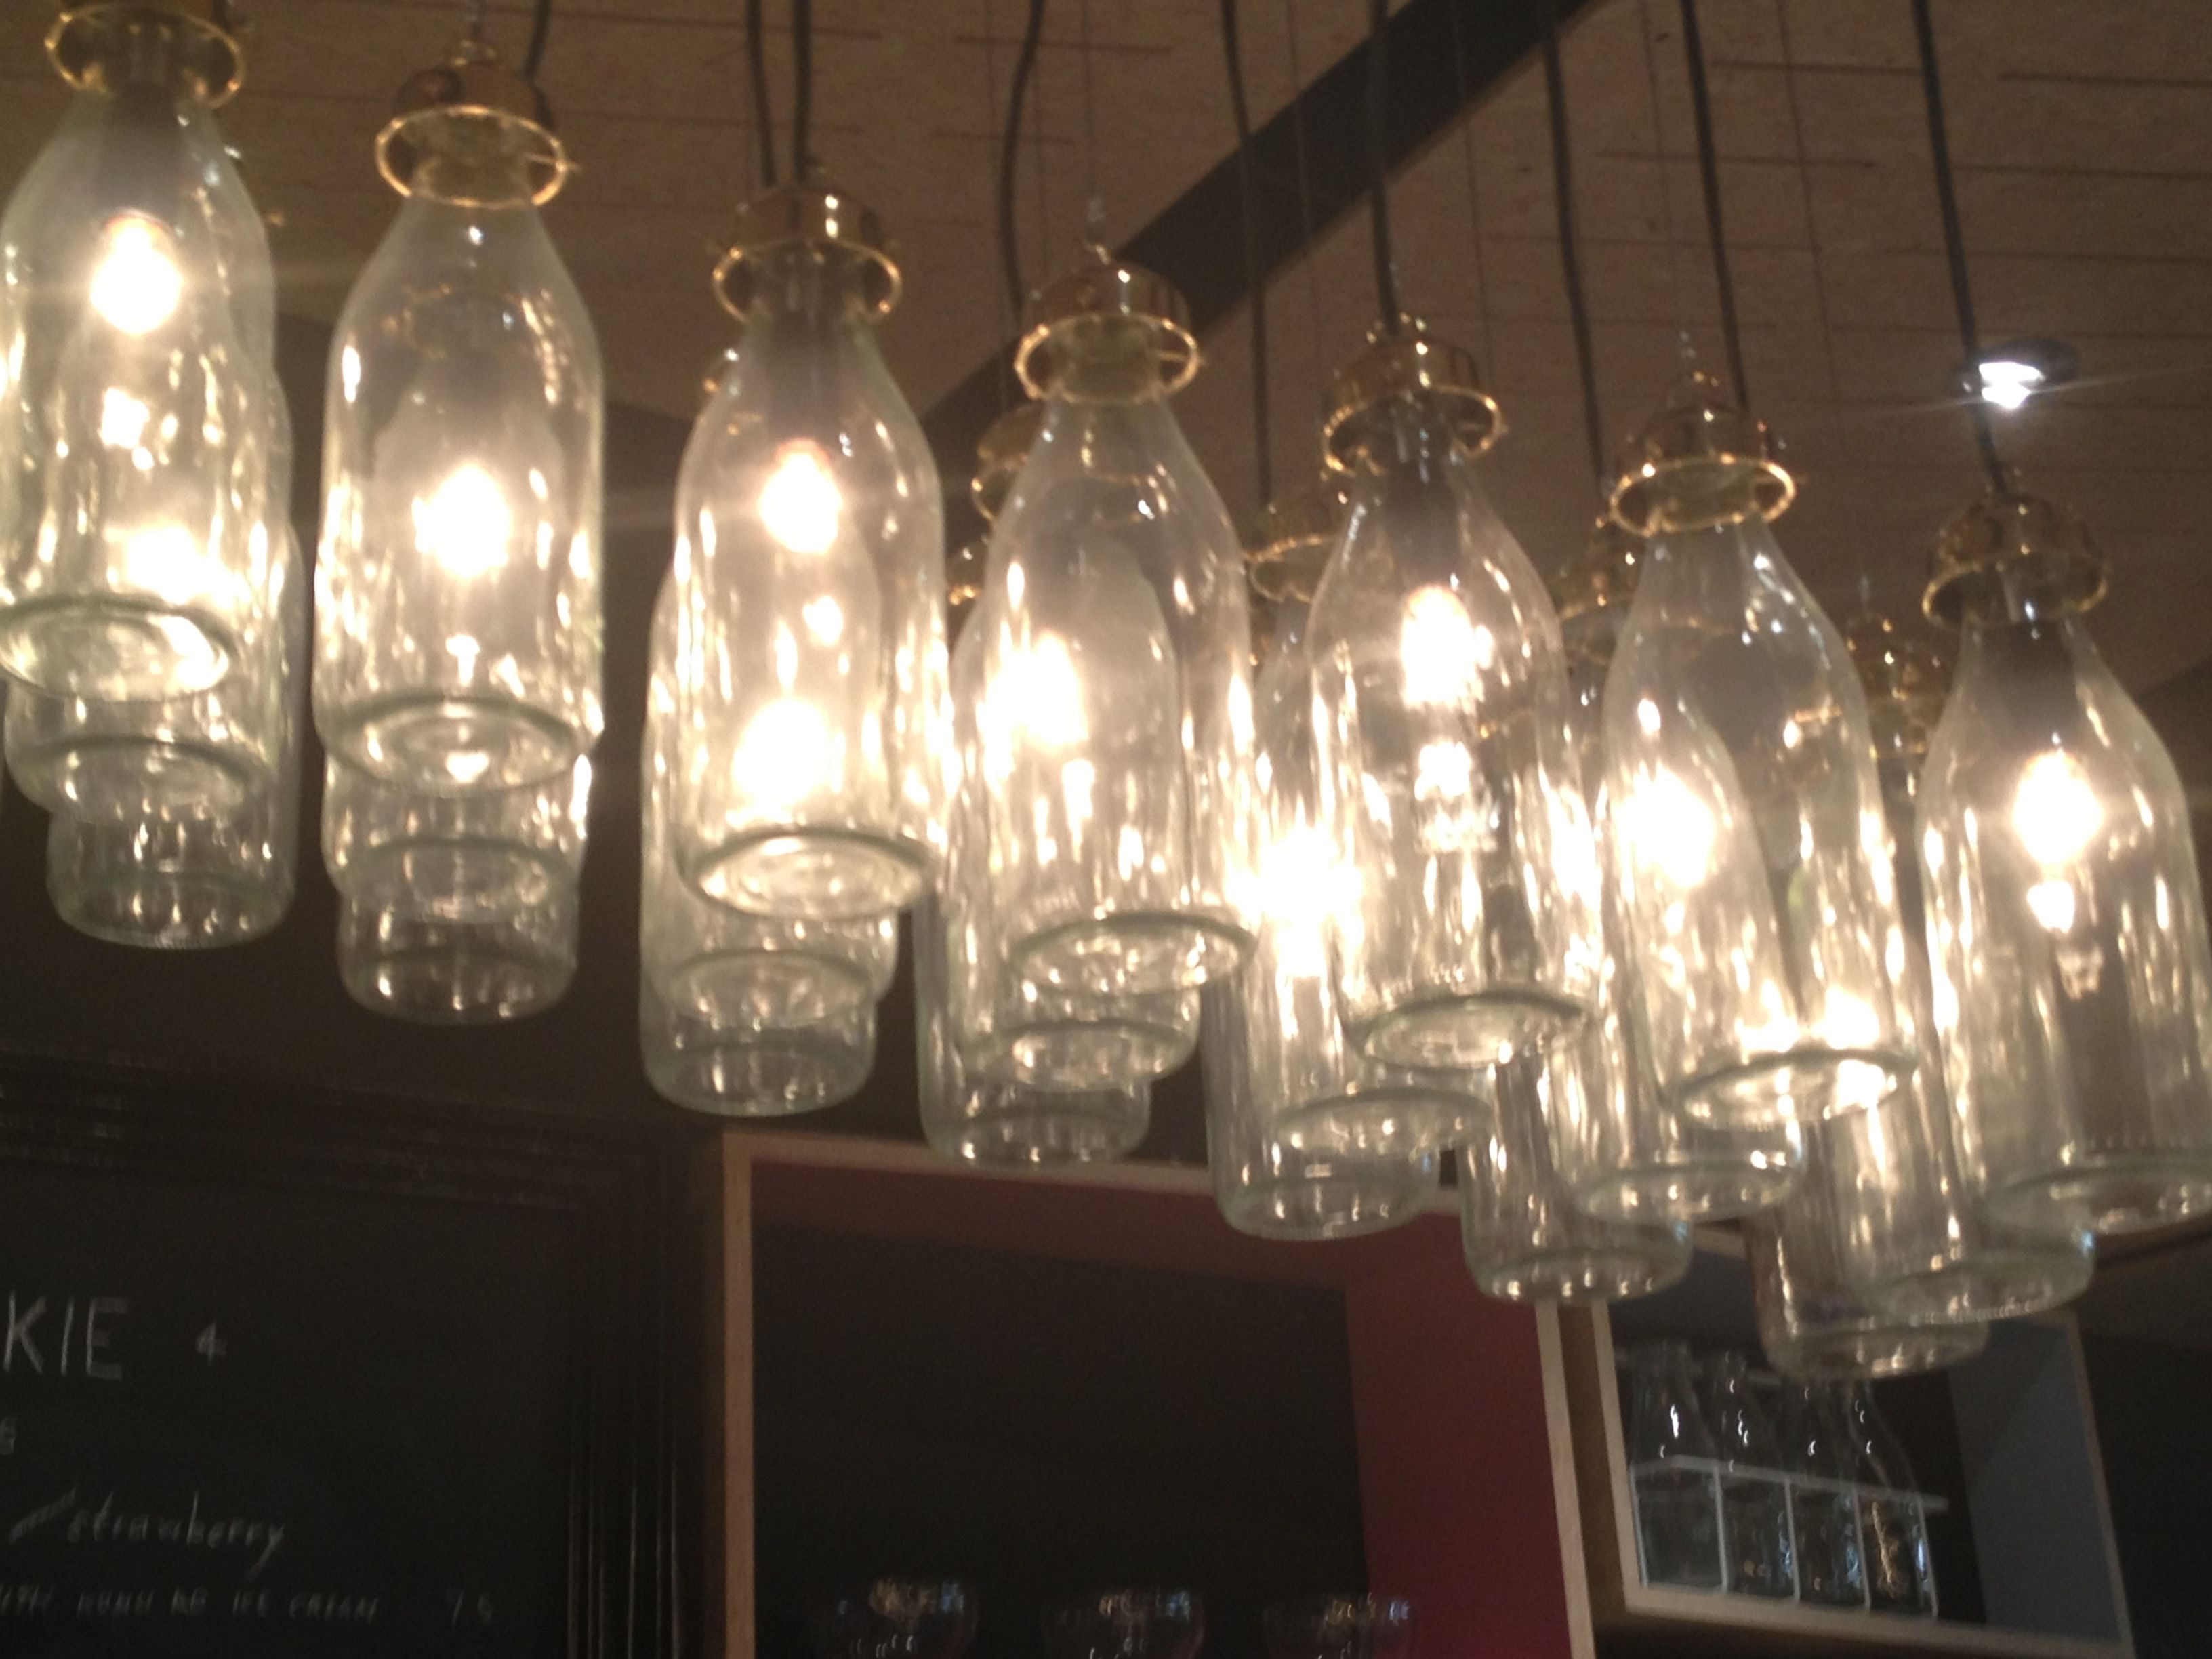 Diy Milk Bottle Lights As Seen In A Cookie Bar In Auckland New